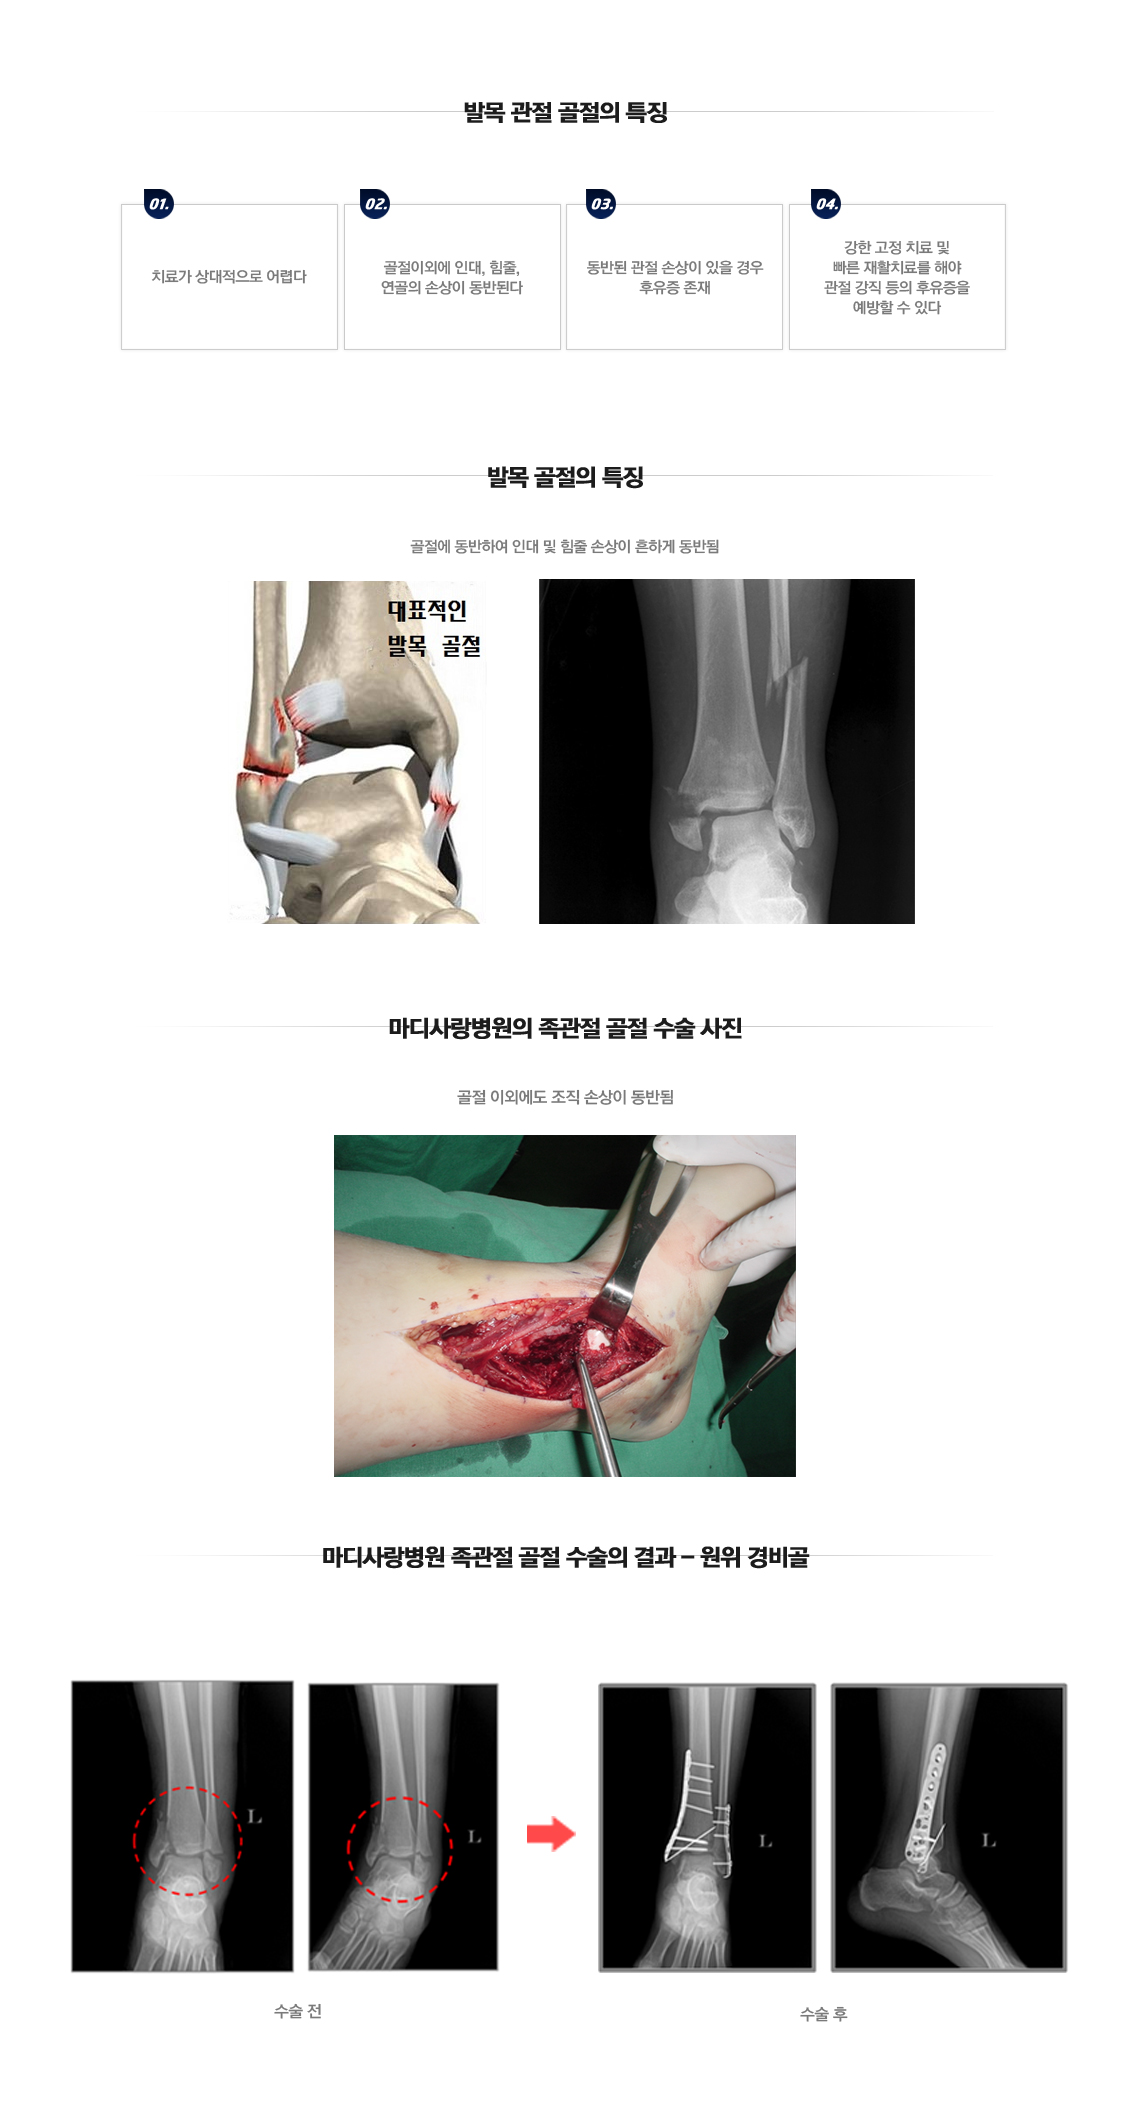 Lateral Ankle Instability Surgery